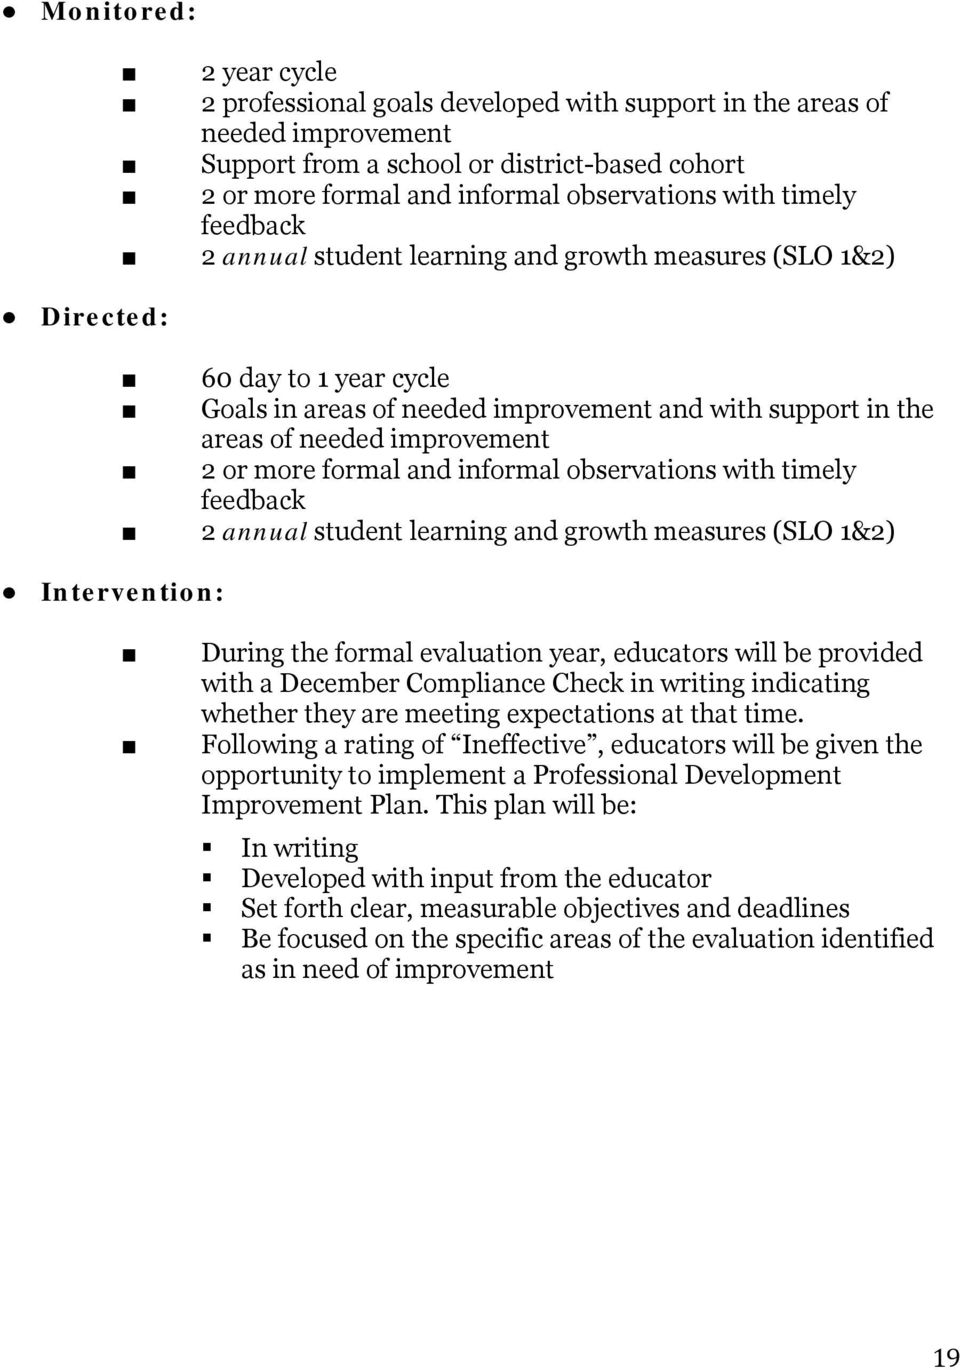 more formal and informal observations with timely feedback 2 annual student learning and growth measures (SLO 1&2) Intervention: During the formal evaluation year, educators will be provided with a